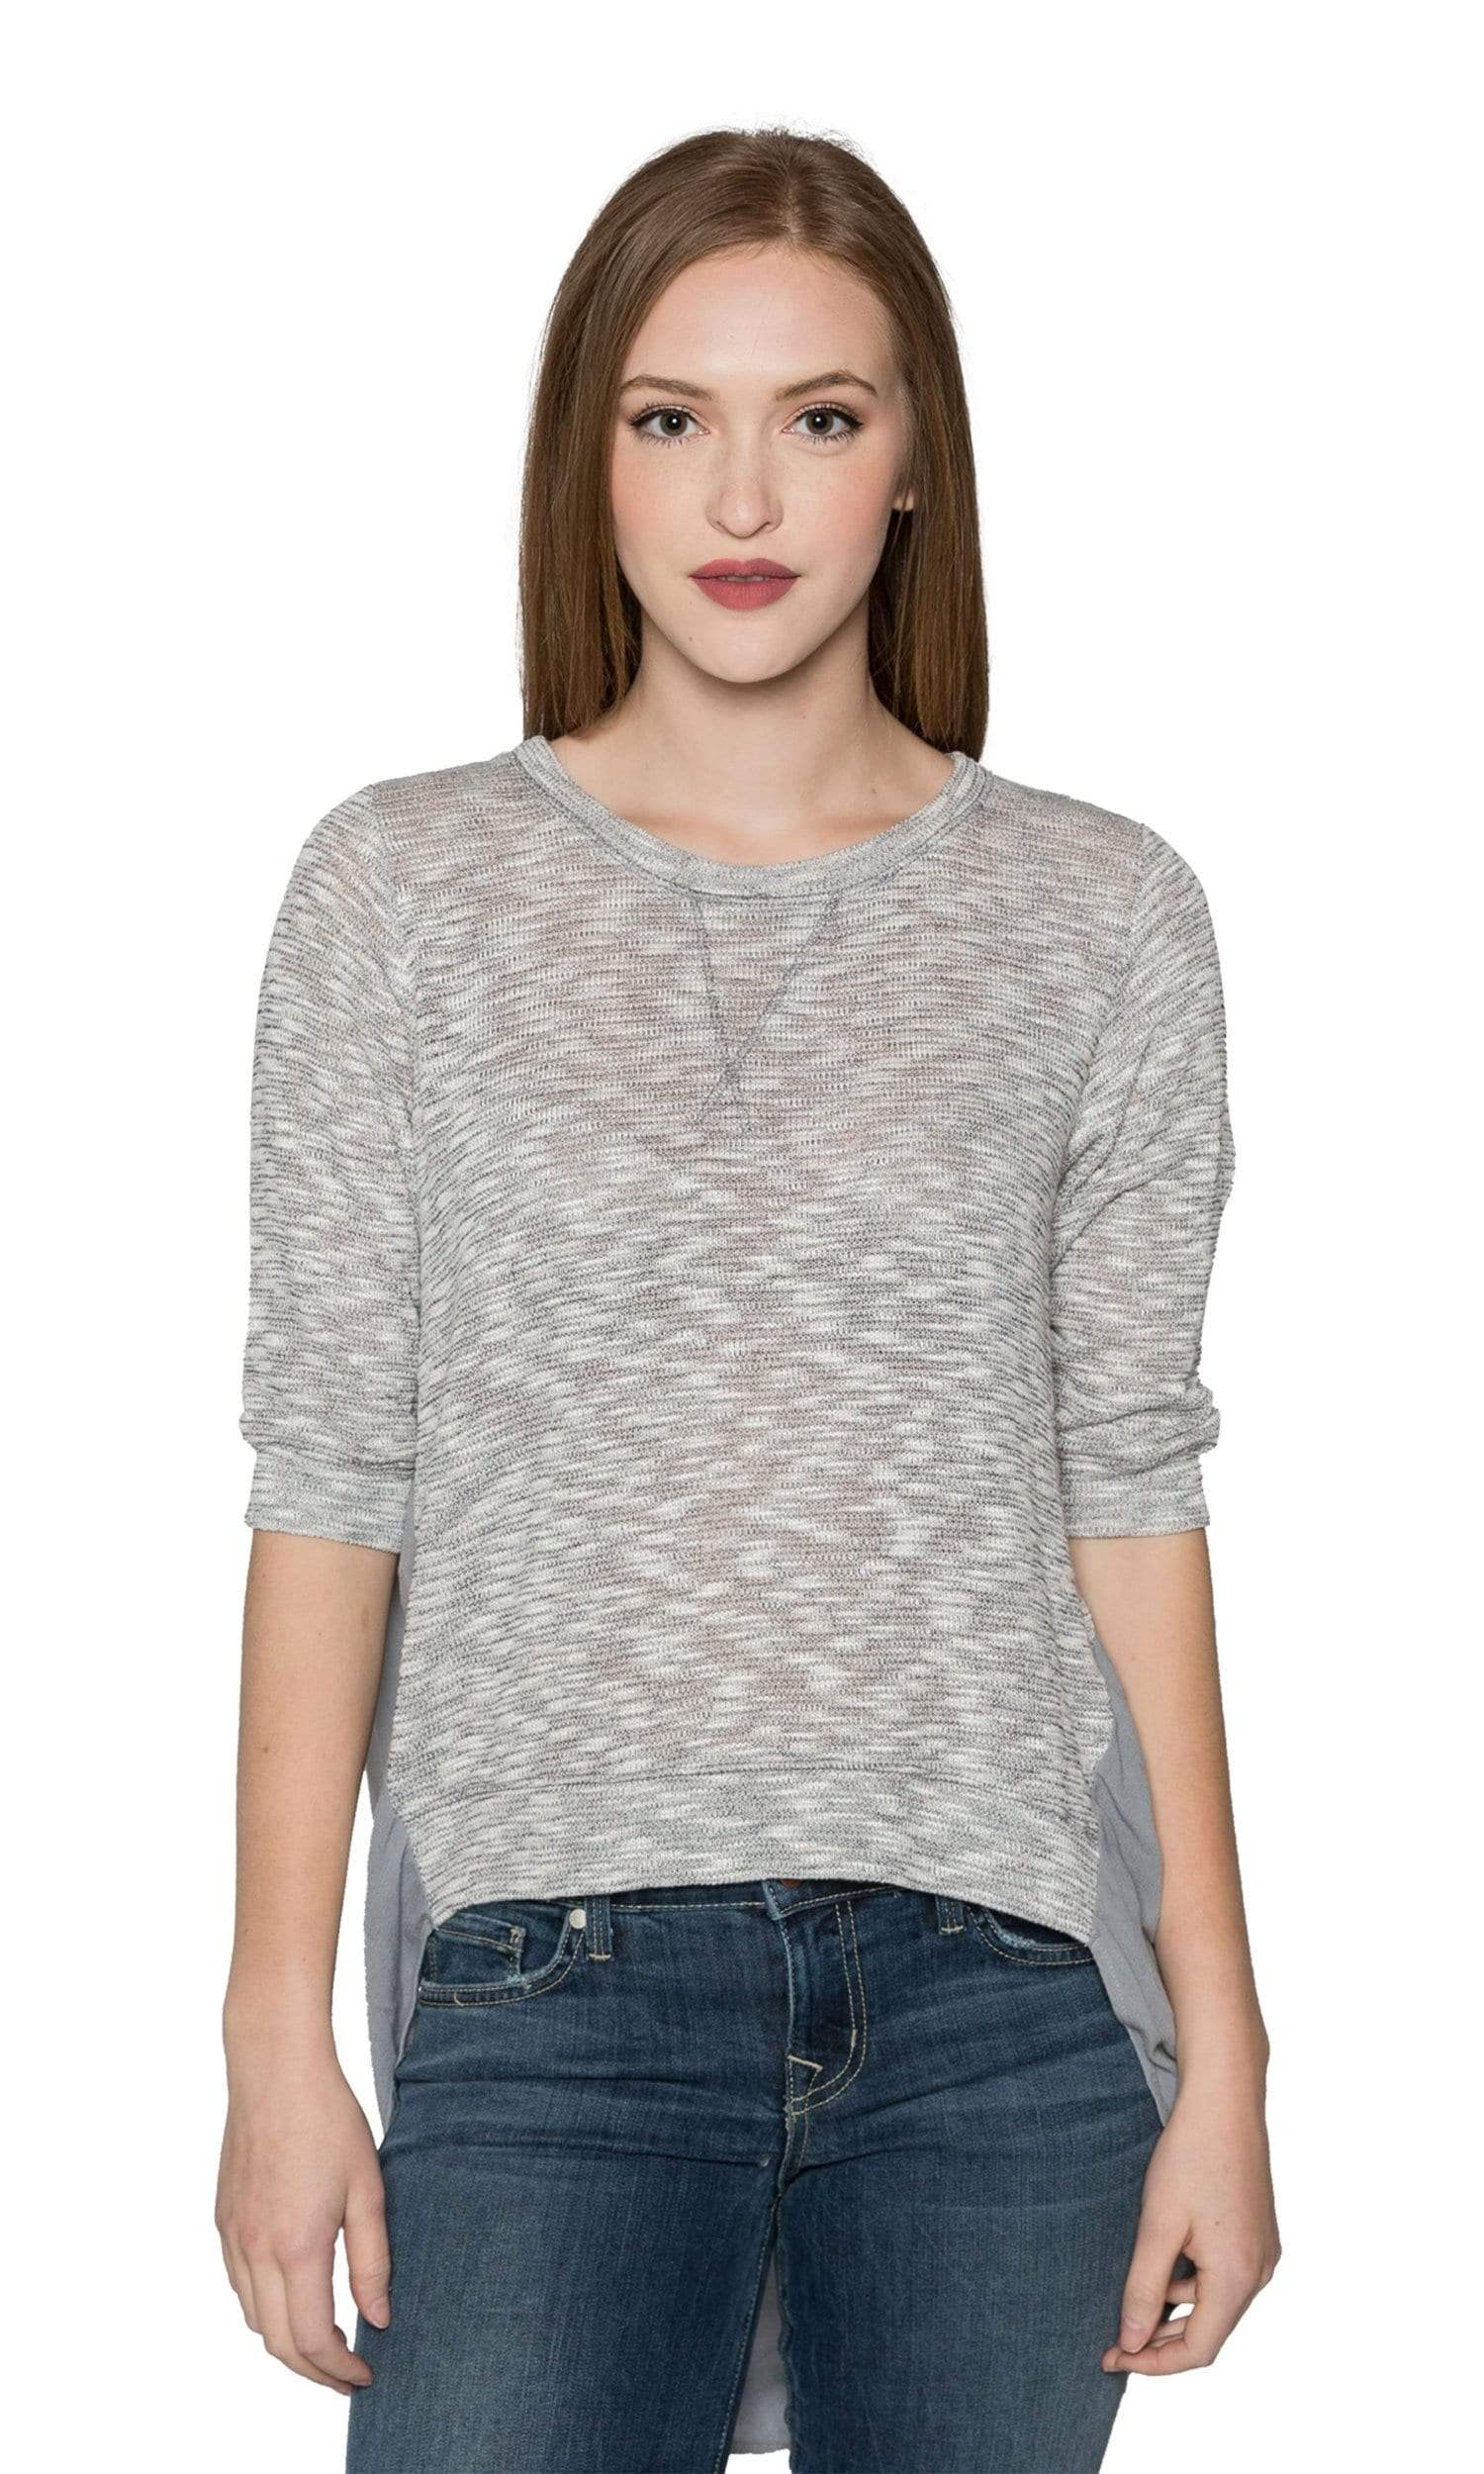 Valln Crewneck Sheer Back Top